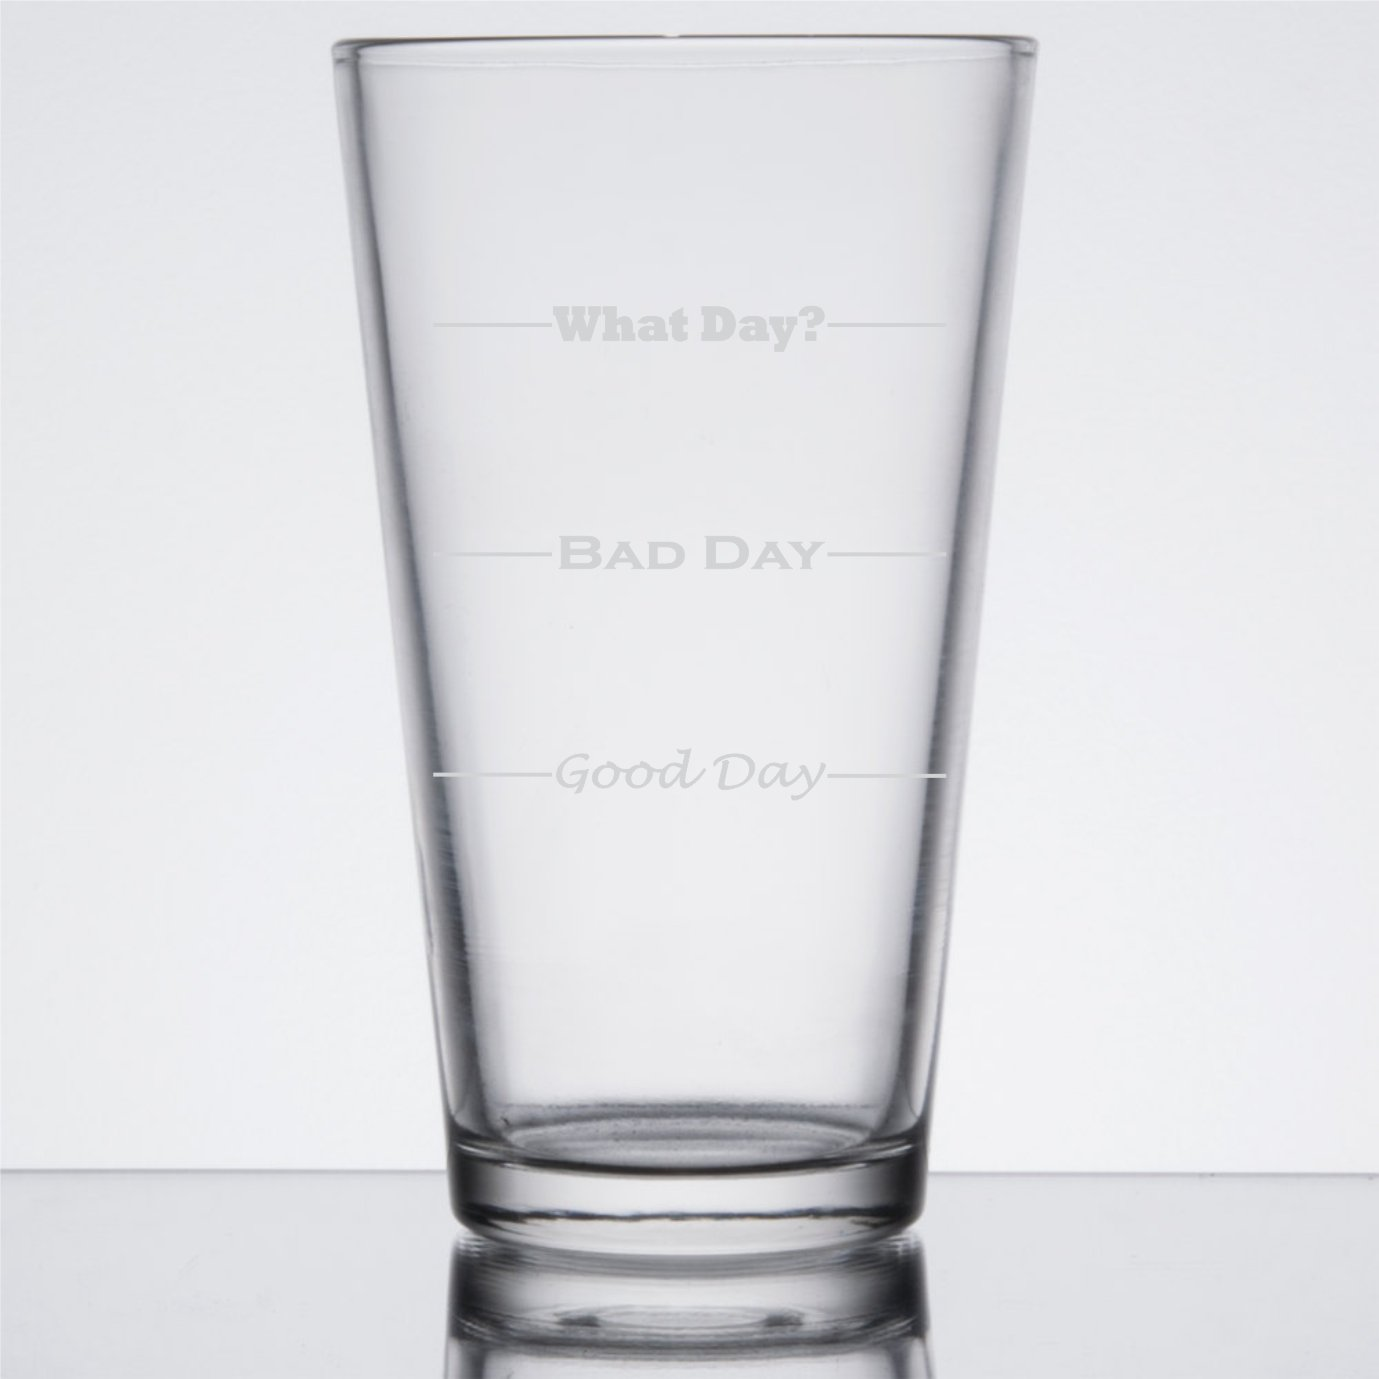 Good Day, Bad Day - Funny 16 oz Pint Beer Glass, Permanently Etched, Gift for Dad, Co-Worker, Friend, Boss, Father's Day - PG13 by Frederick Engraving (Image #2)